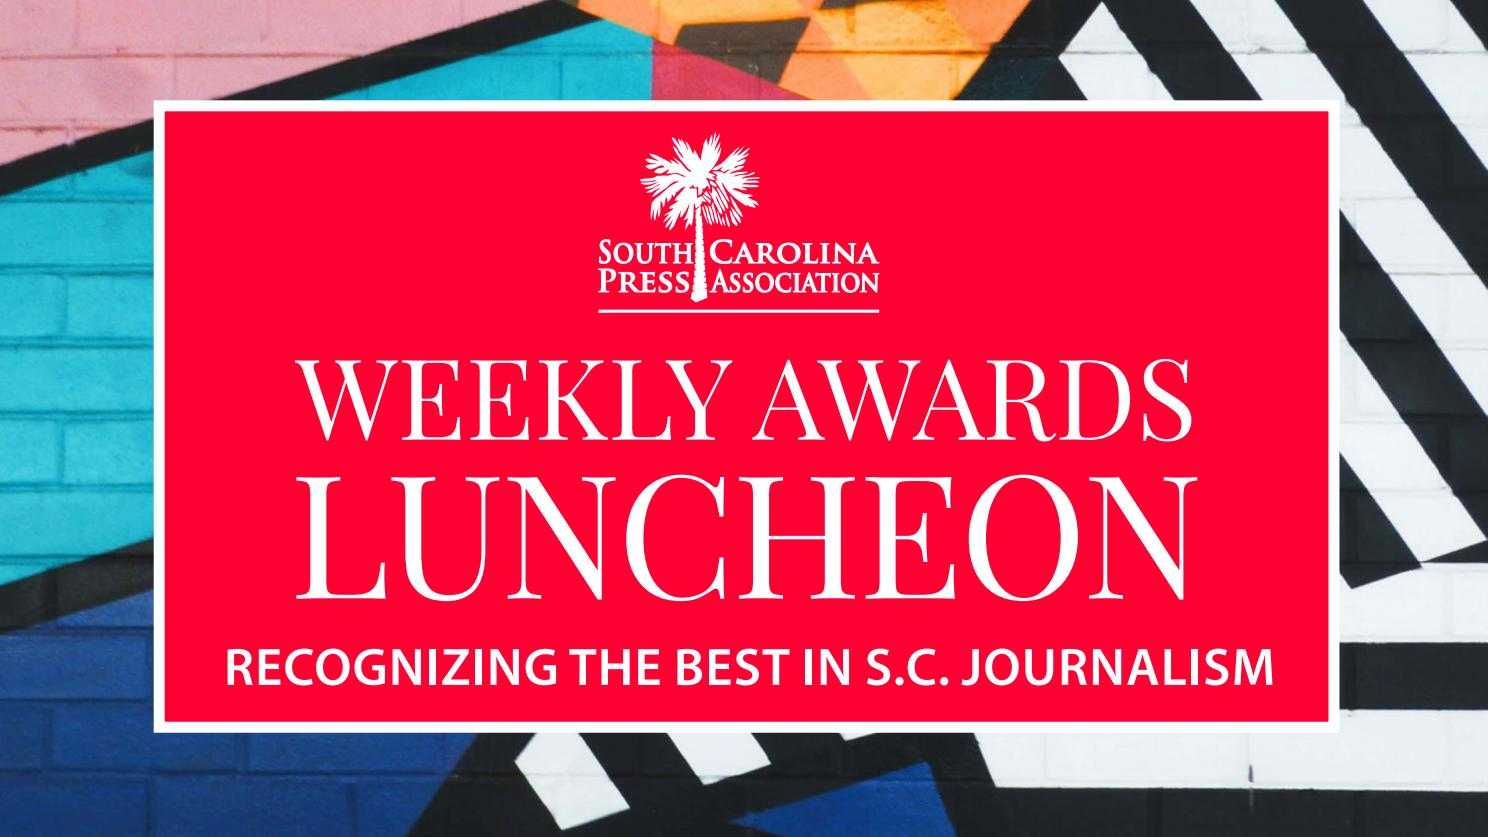 63755a03e5d22 2019 Weekly Awards Luncheon Digital Presentation by S.C. Press Association  - issuu